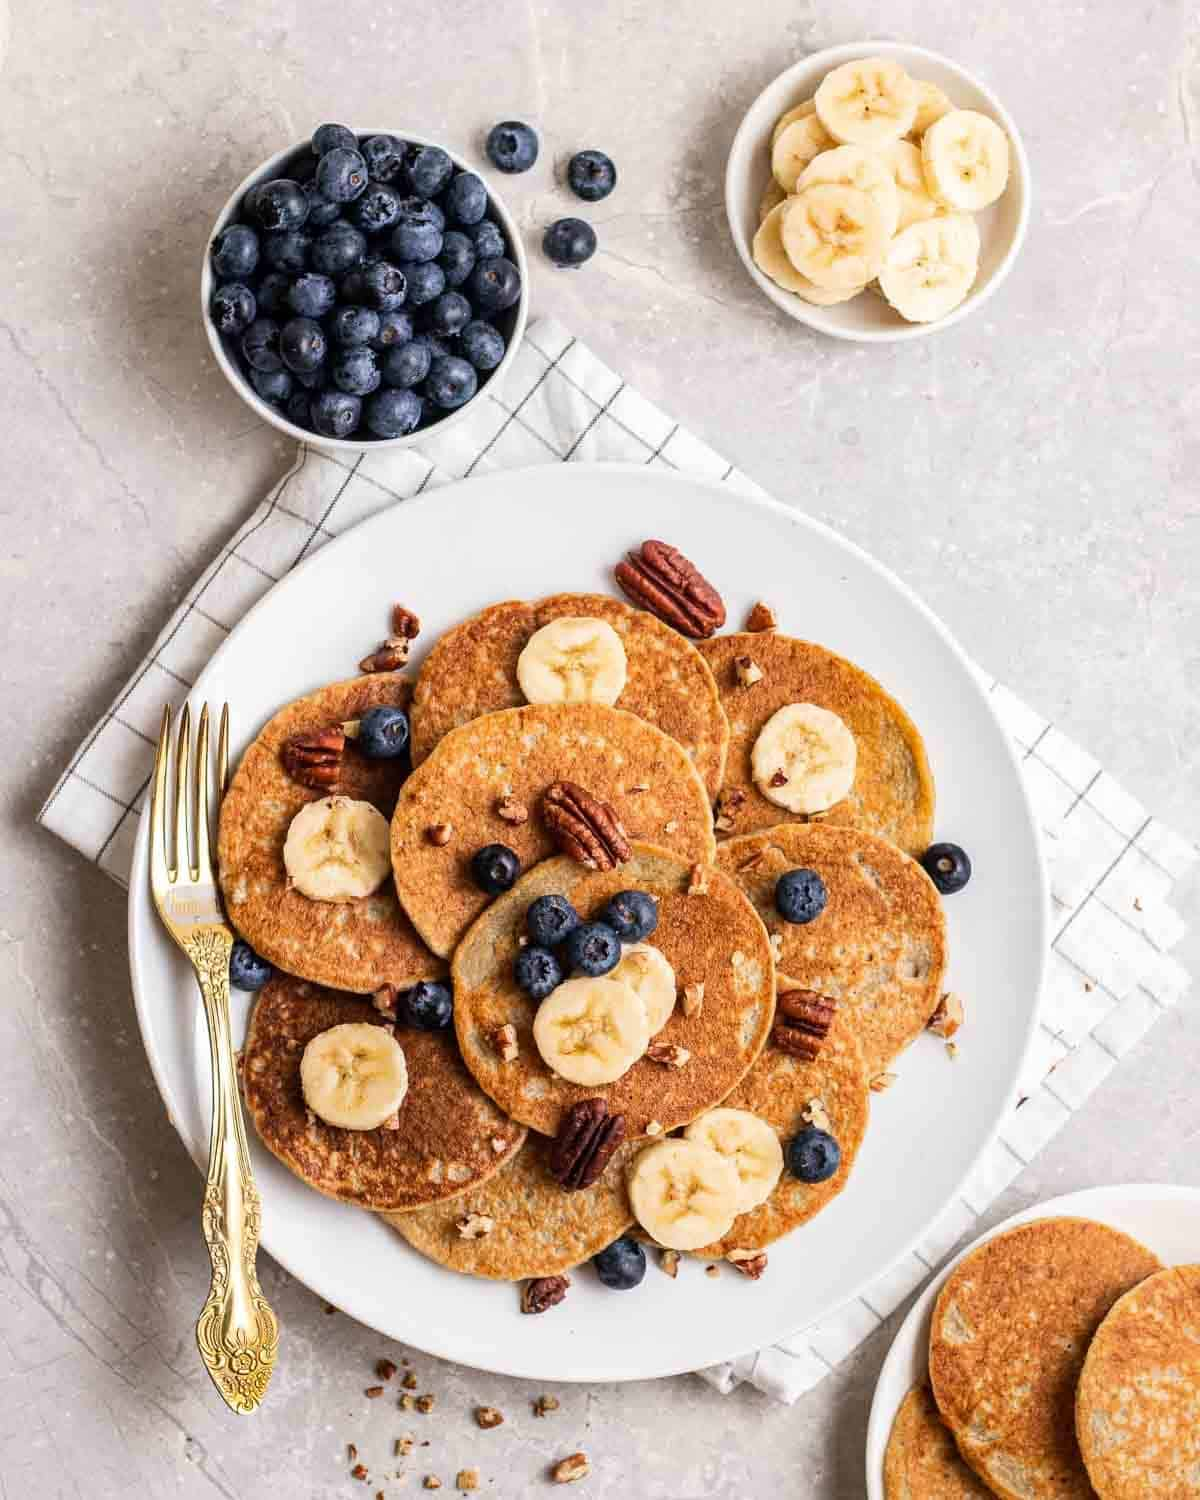 A plate of pancakes topped with sliced banana, blueberries and pecans with a fork beside.